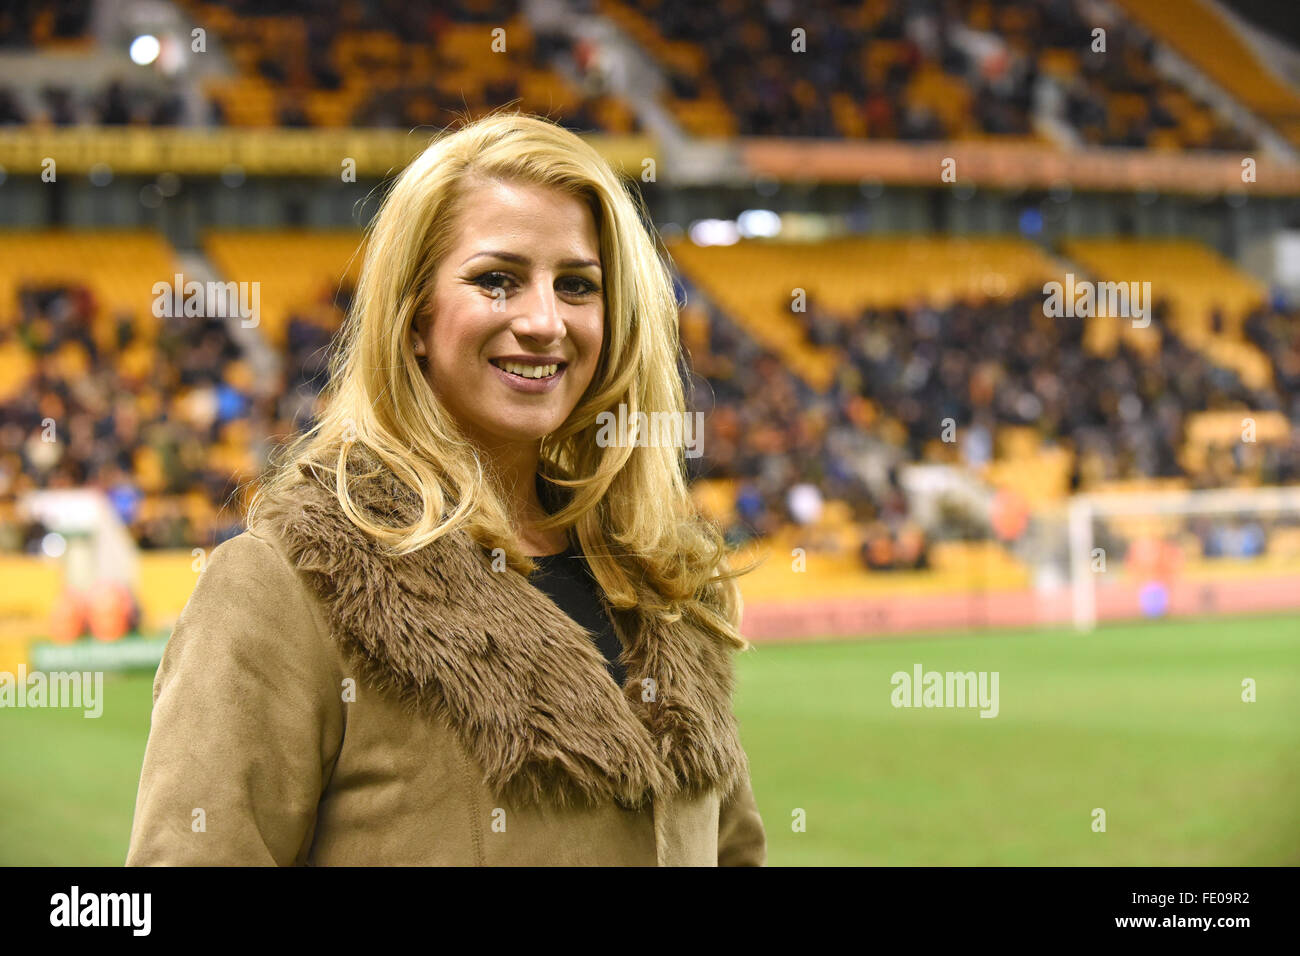 The Voice contestant Megan Reece appearing at Molineux Stadium Credit:  David Bagnall/Alamy Live News - Stock Image